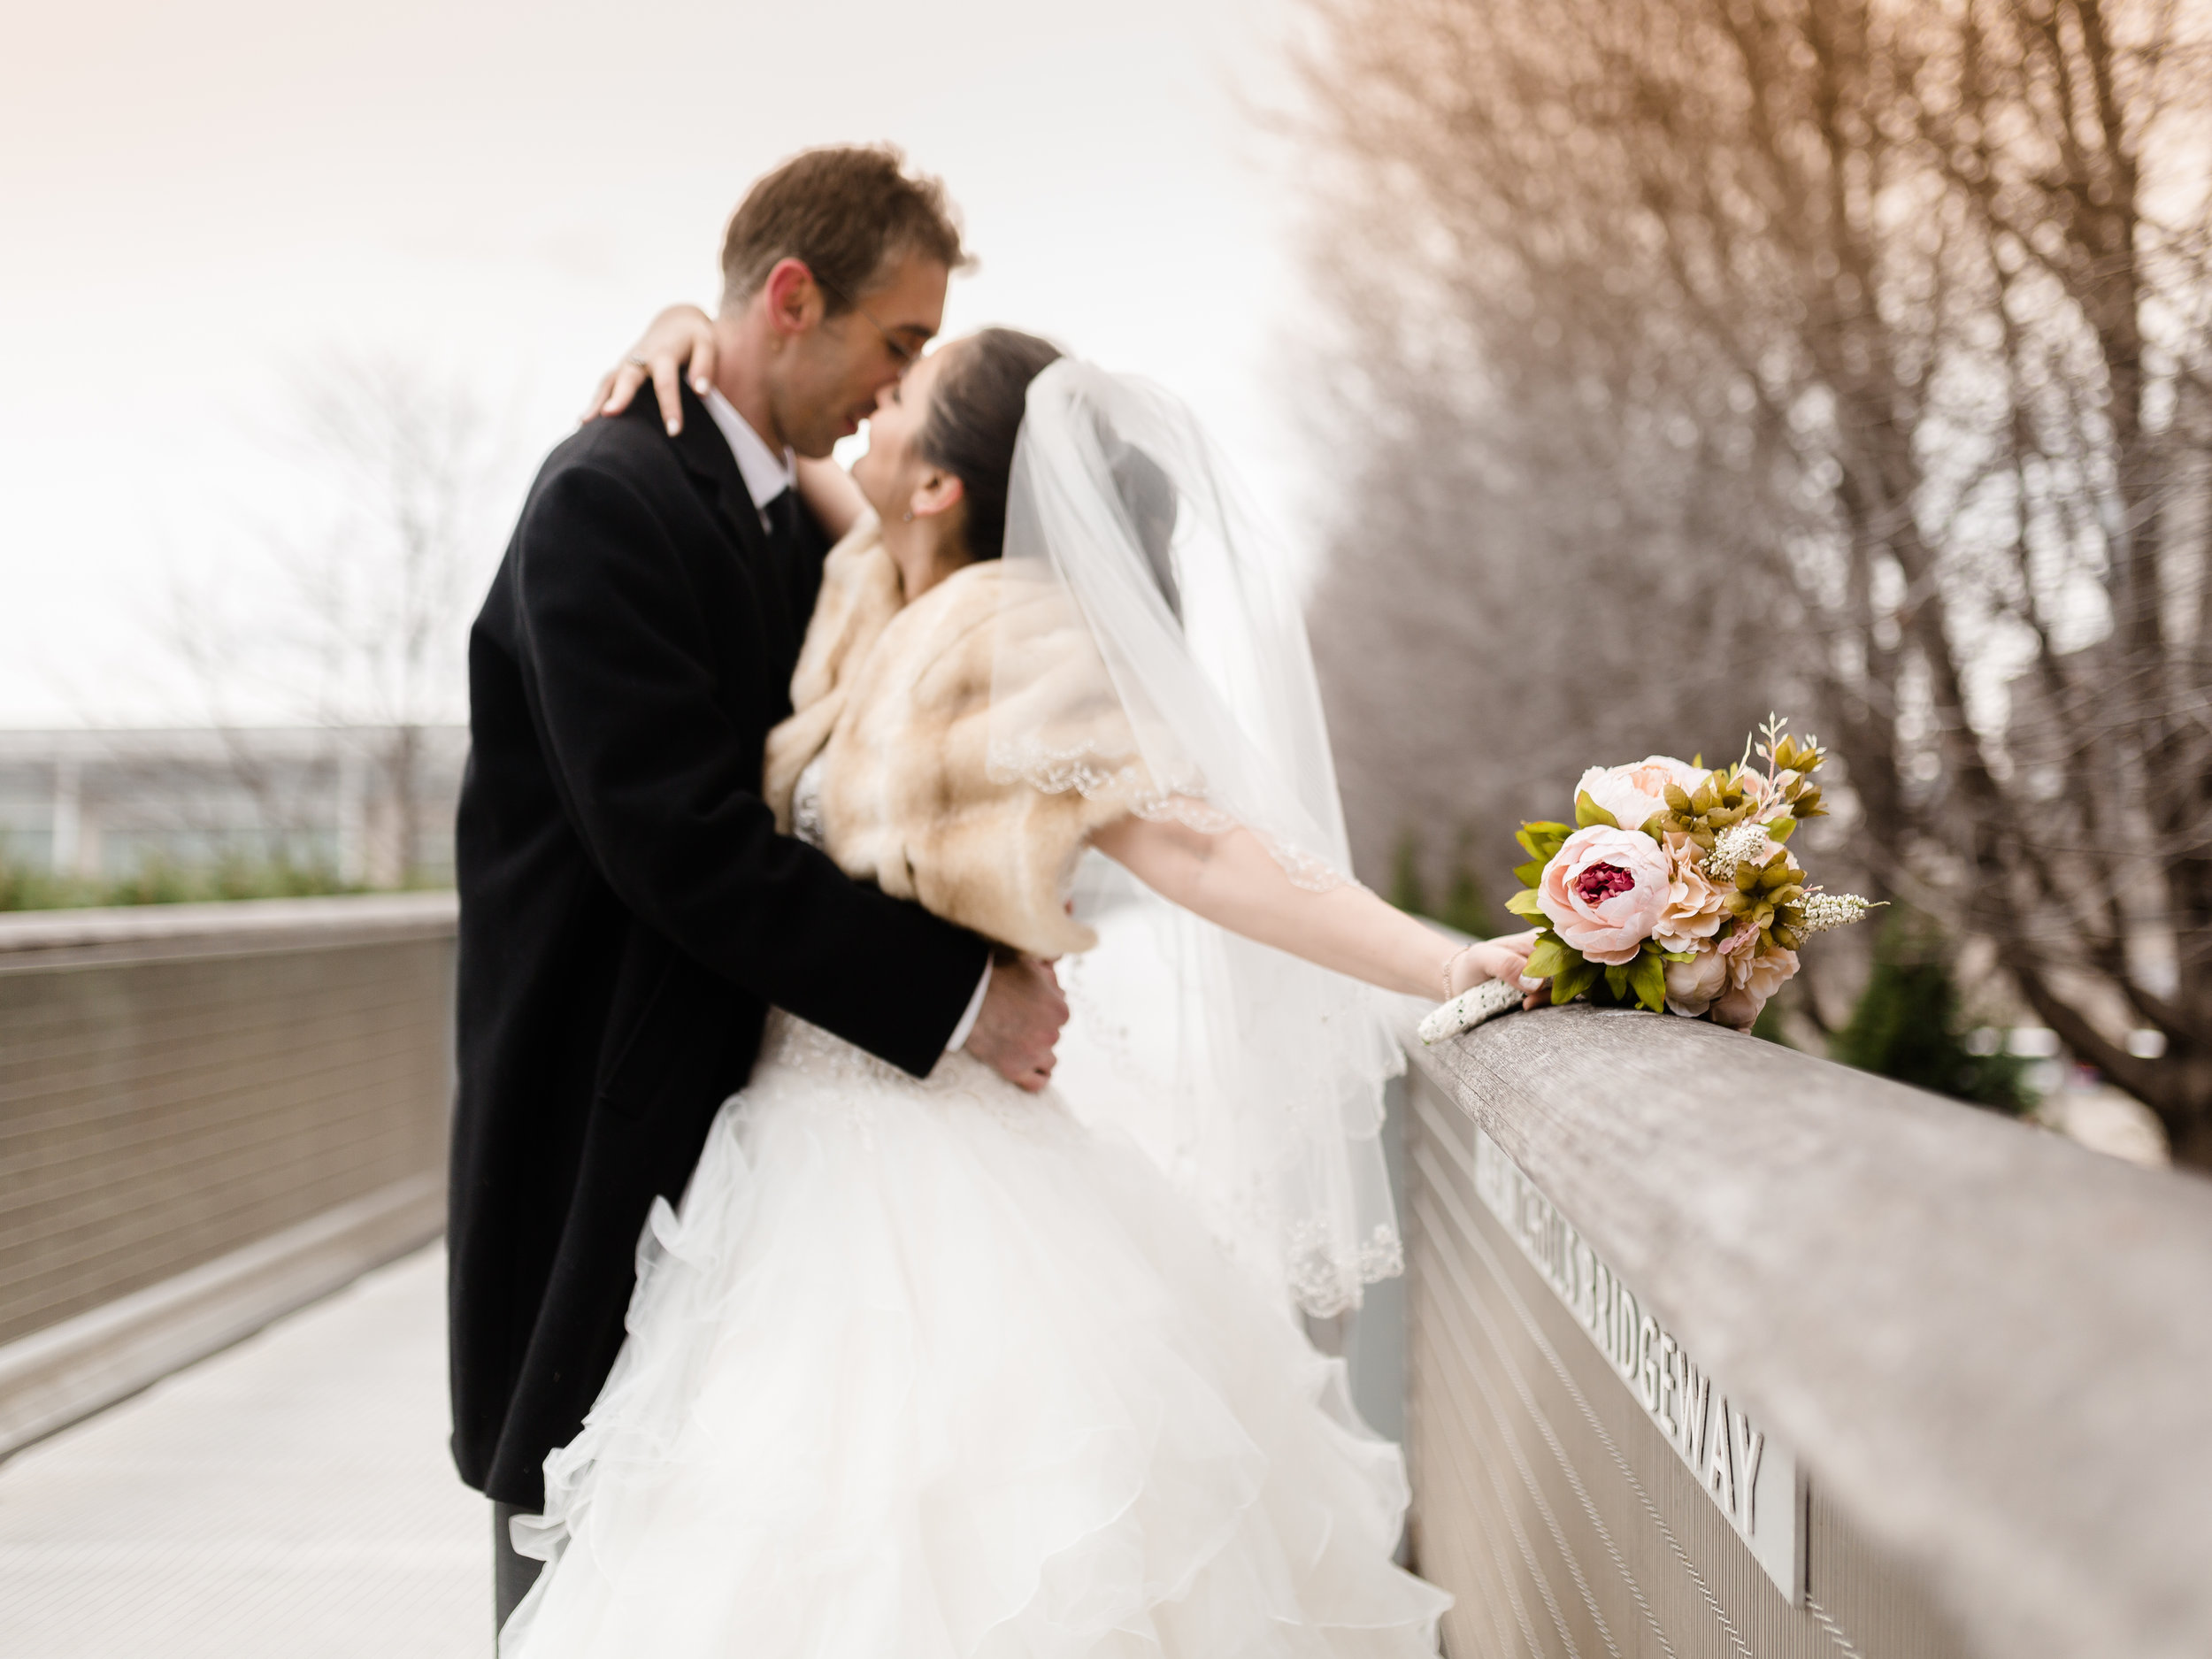 chicago elopement winter wedding lifestyle photography jenny grimm